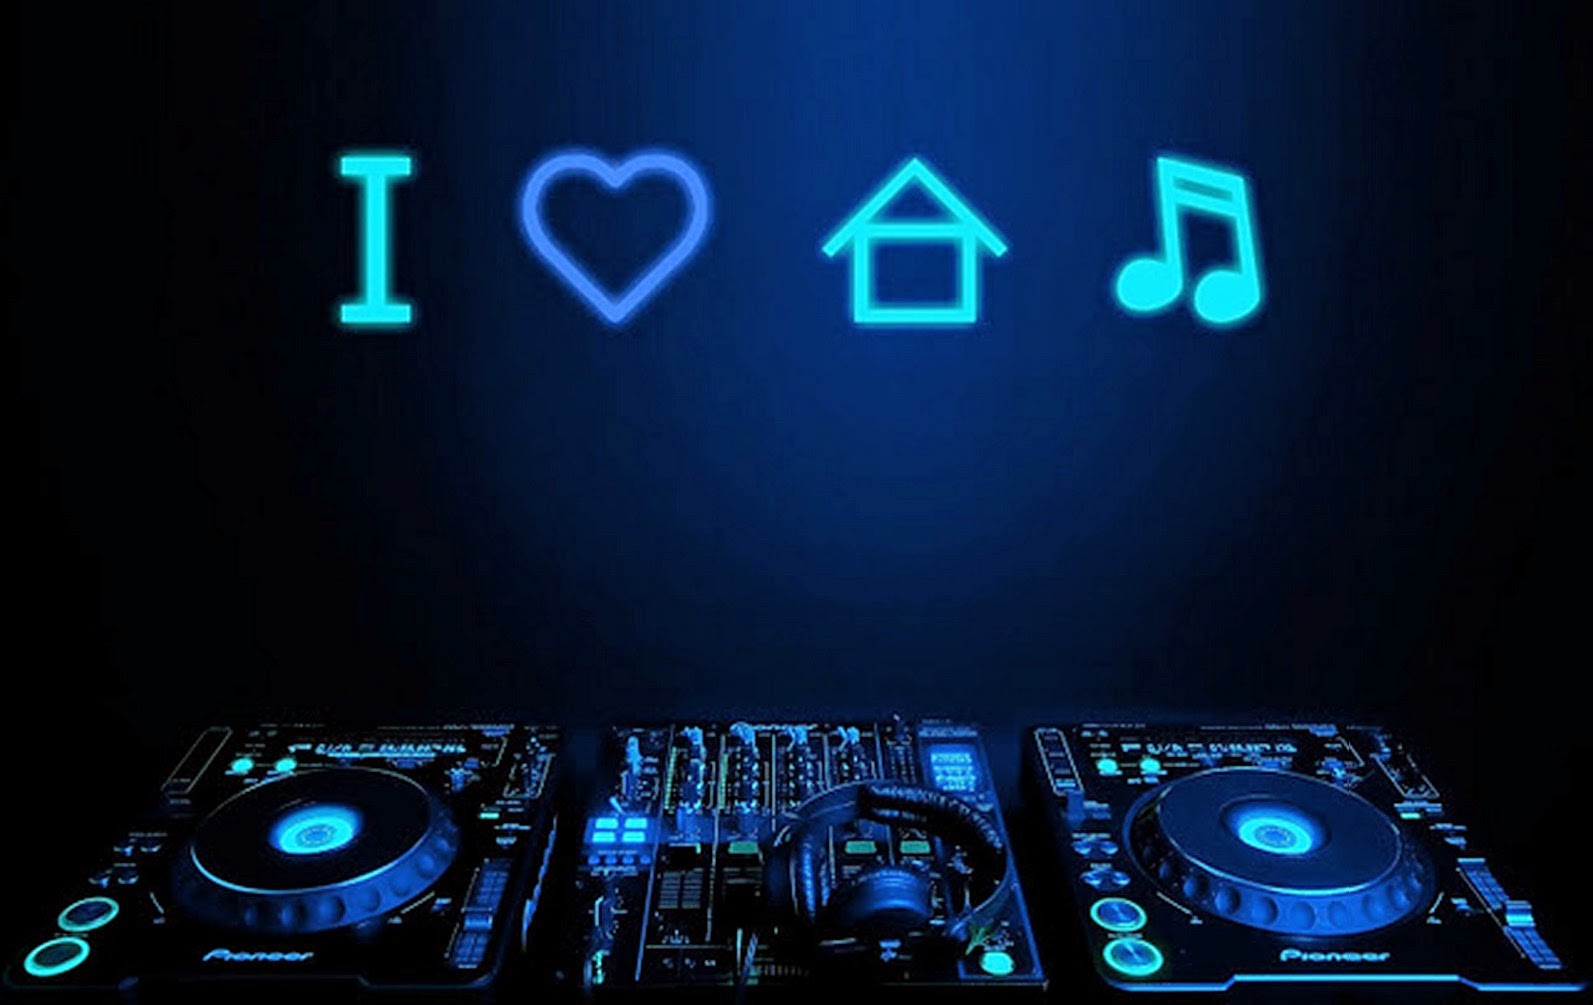 house_music_hd_wallpaper_18.jpg